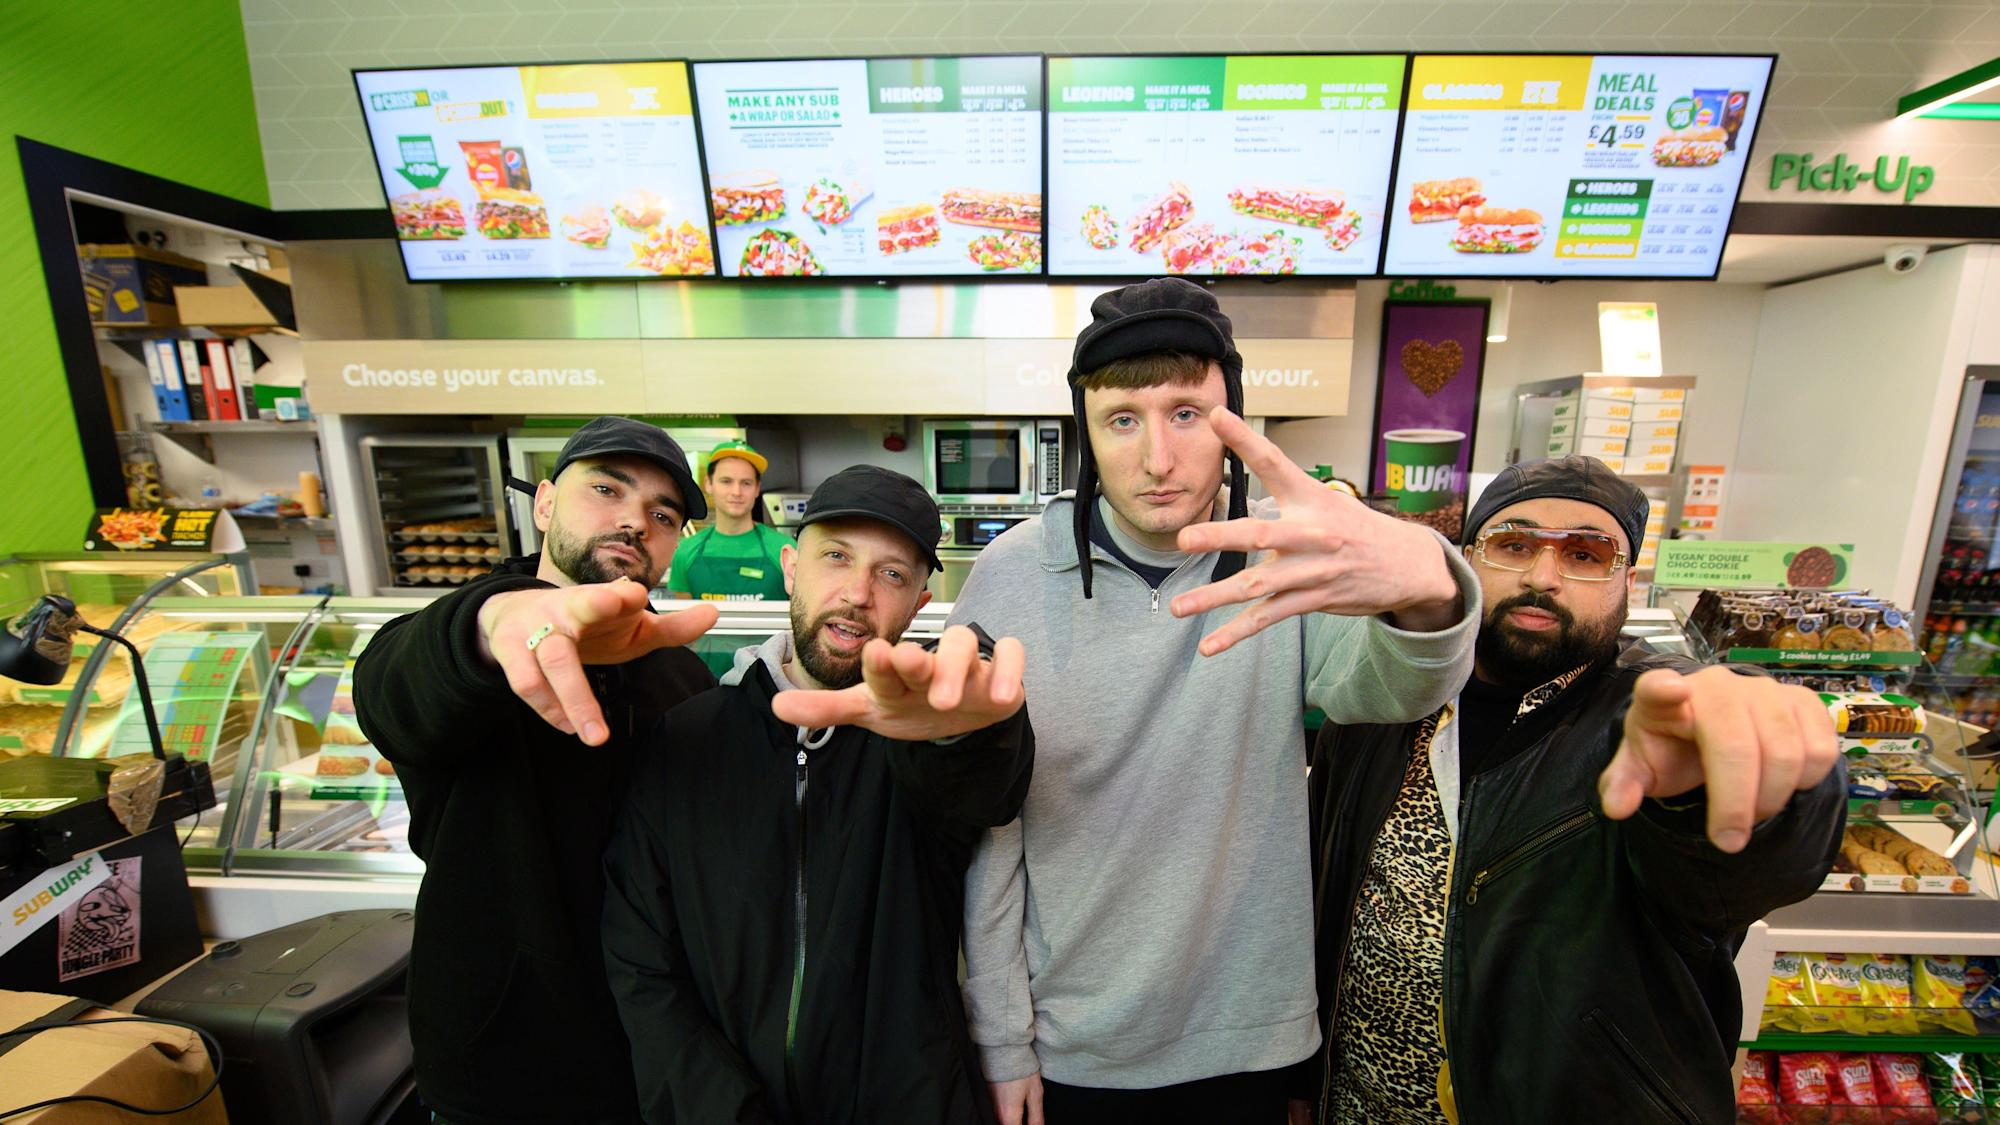 Kurupt FM wanted to give Craig David 'more limelight' through collaboration